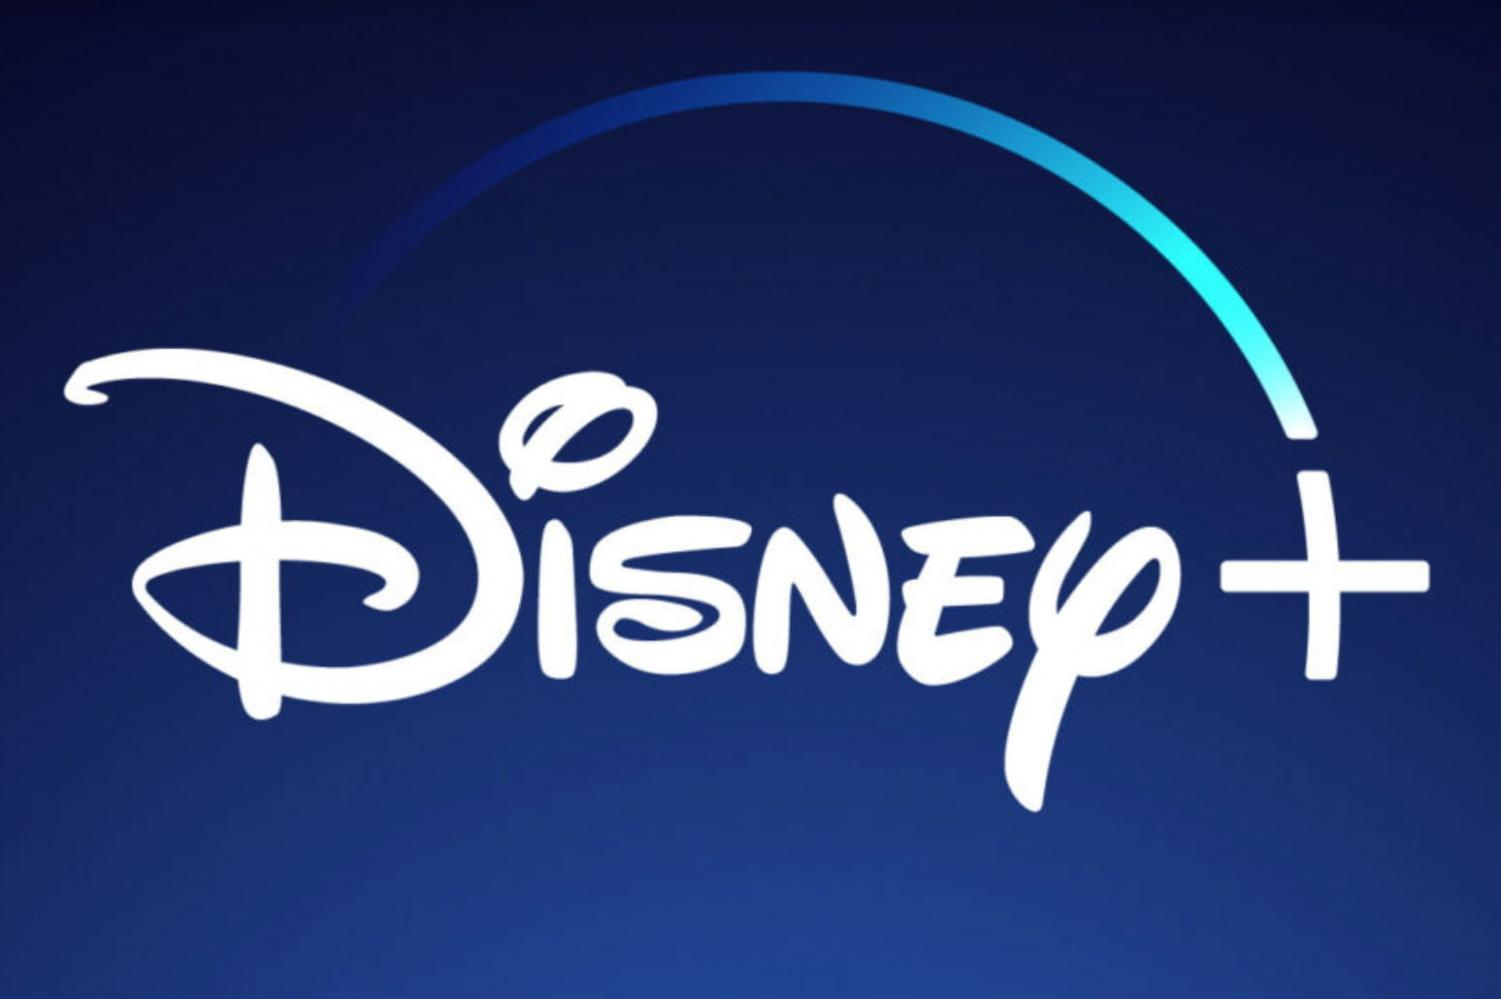 Disney Plus is the newest member of the online streaming business.